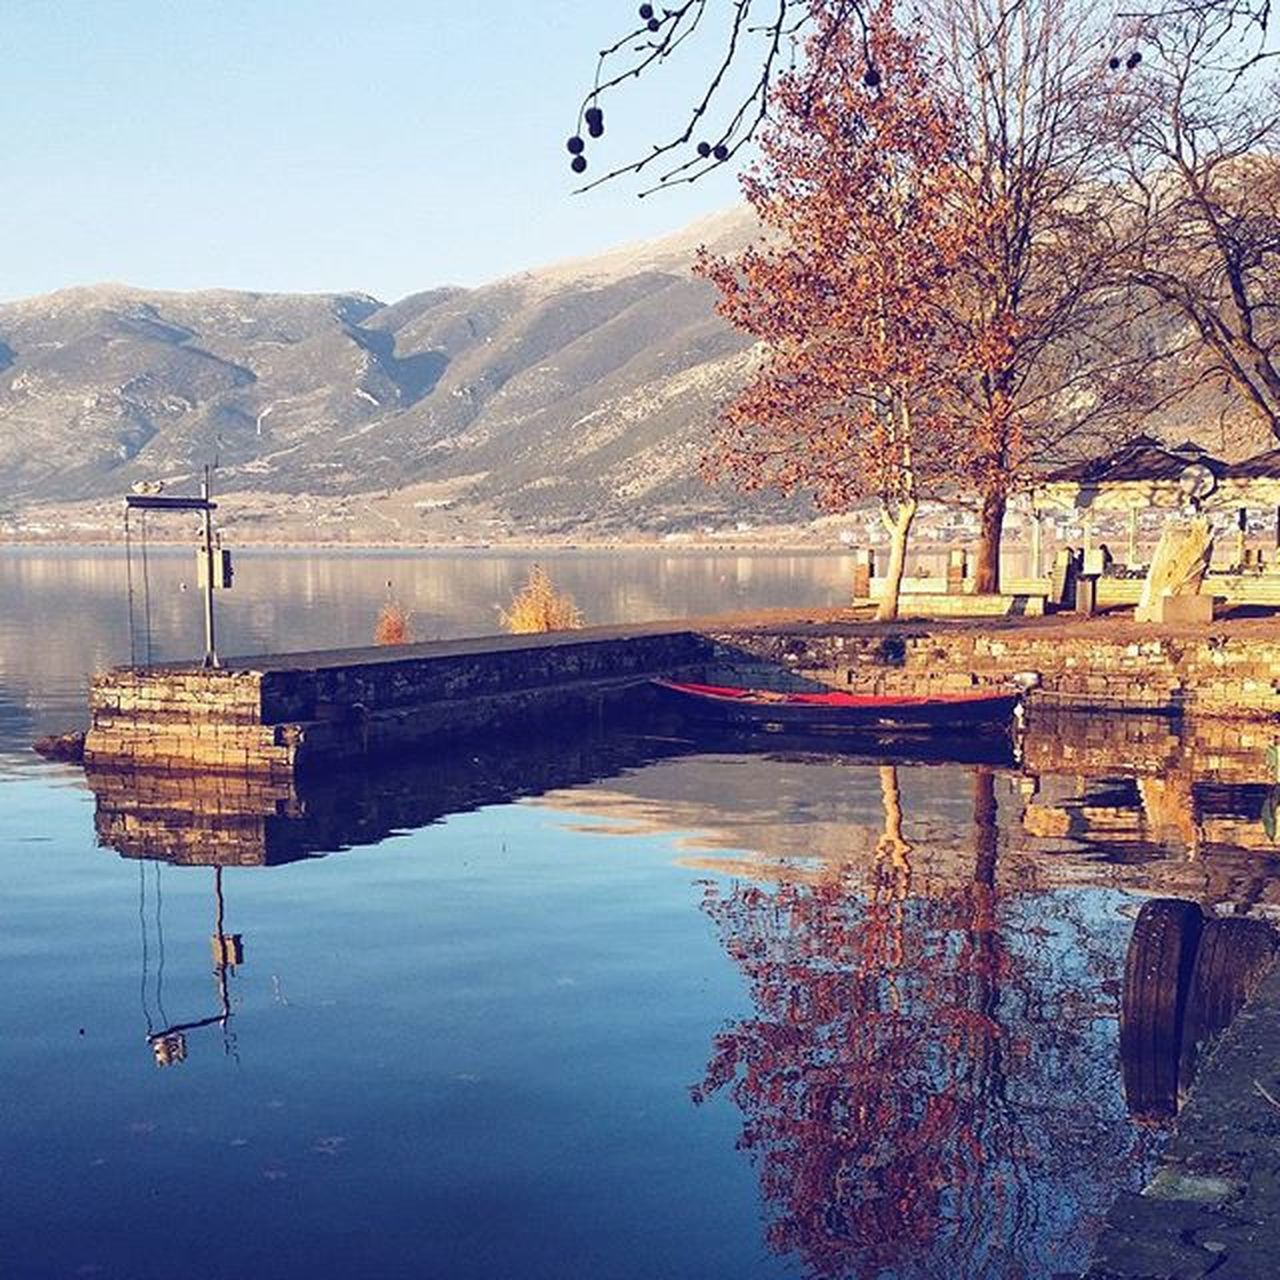 mountain, water, reflection, nature, outdoors, lake, mountain range, scenics, day, beauty in nature, no people, tranquility, sky, tree, architecture, bare tree, clear sky